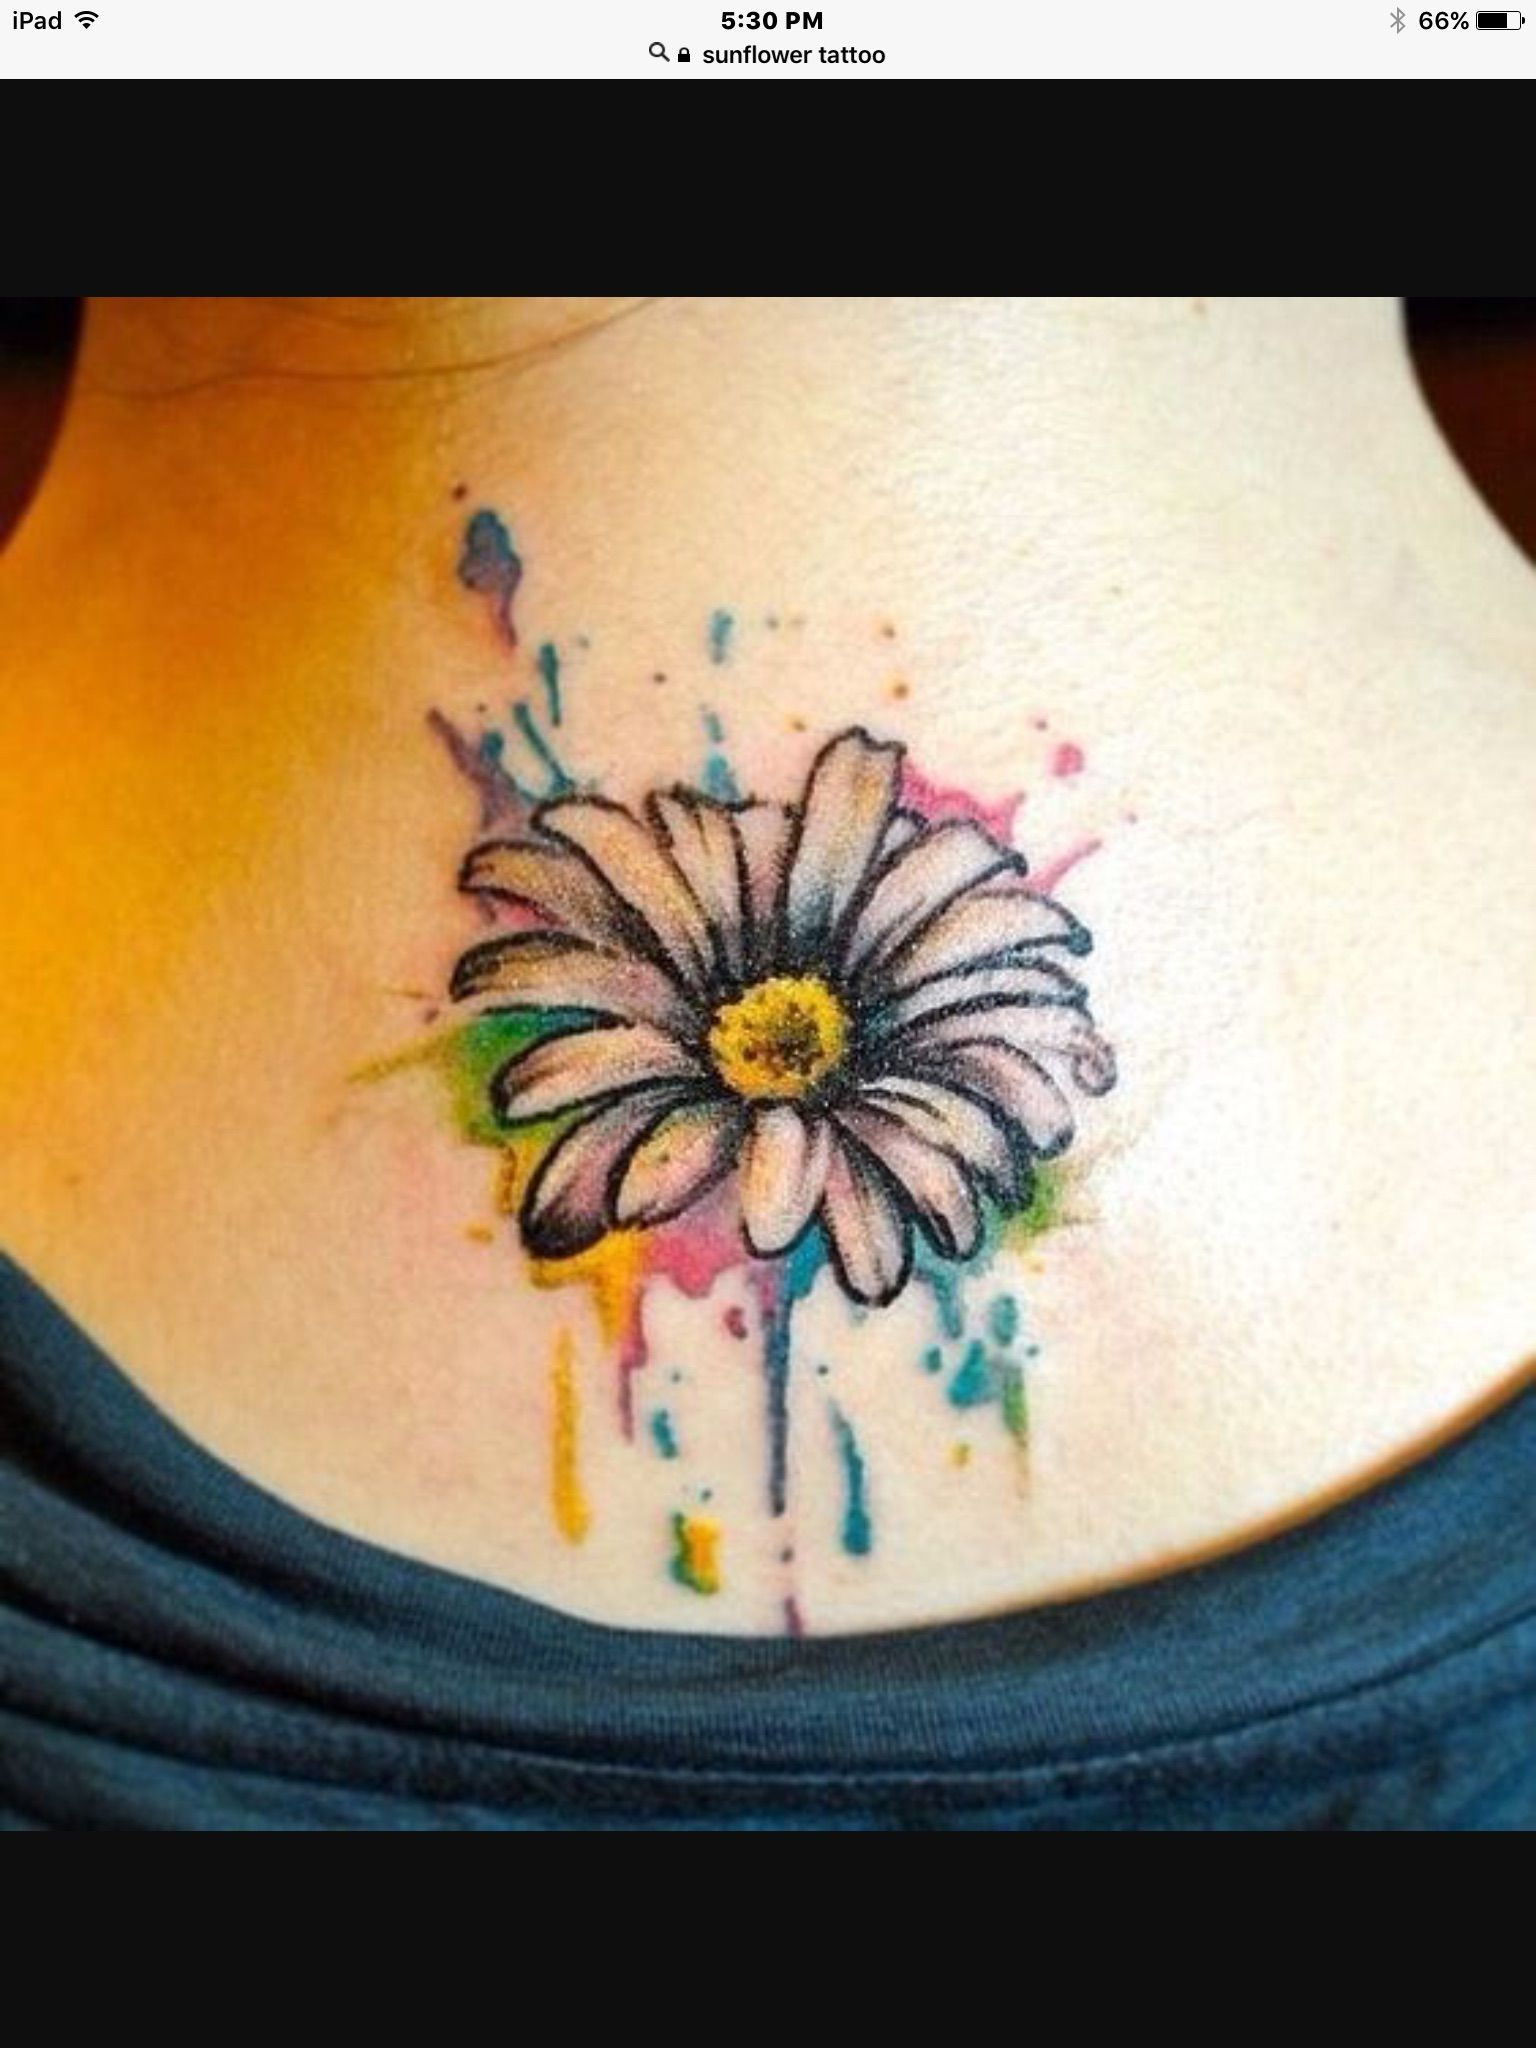 Pin By Evermore Ink On Tattoo Ideas Pinterest Tattoos Daisy